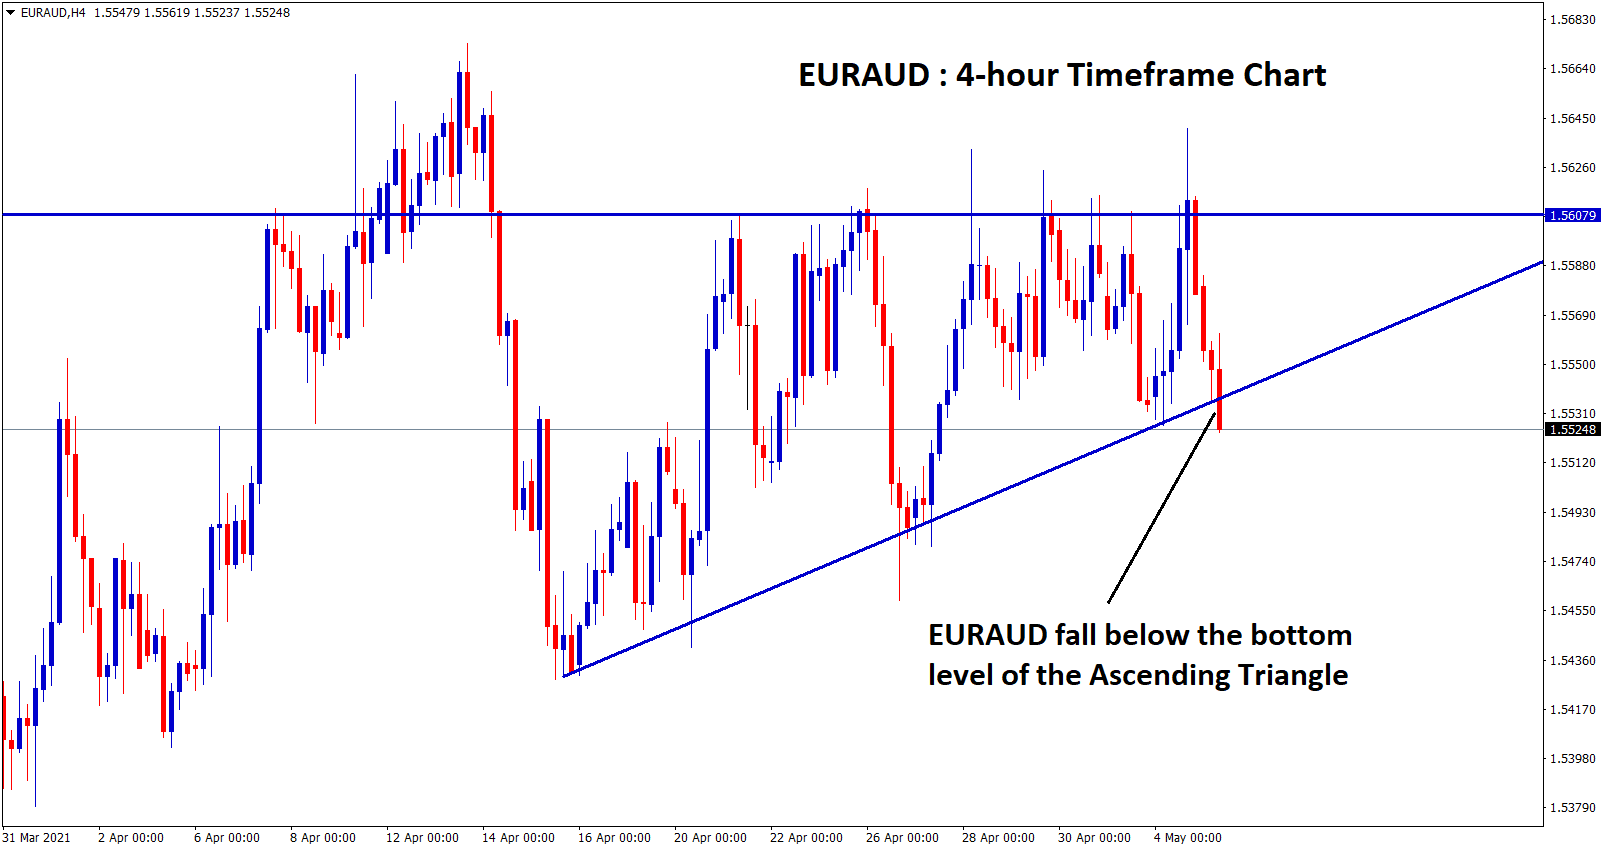 EURAUD fall below the bottom level of Ascending triangle